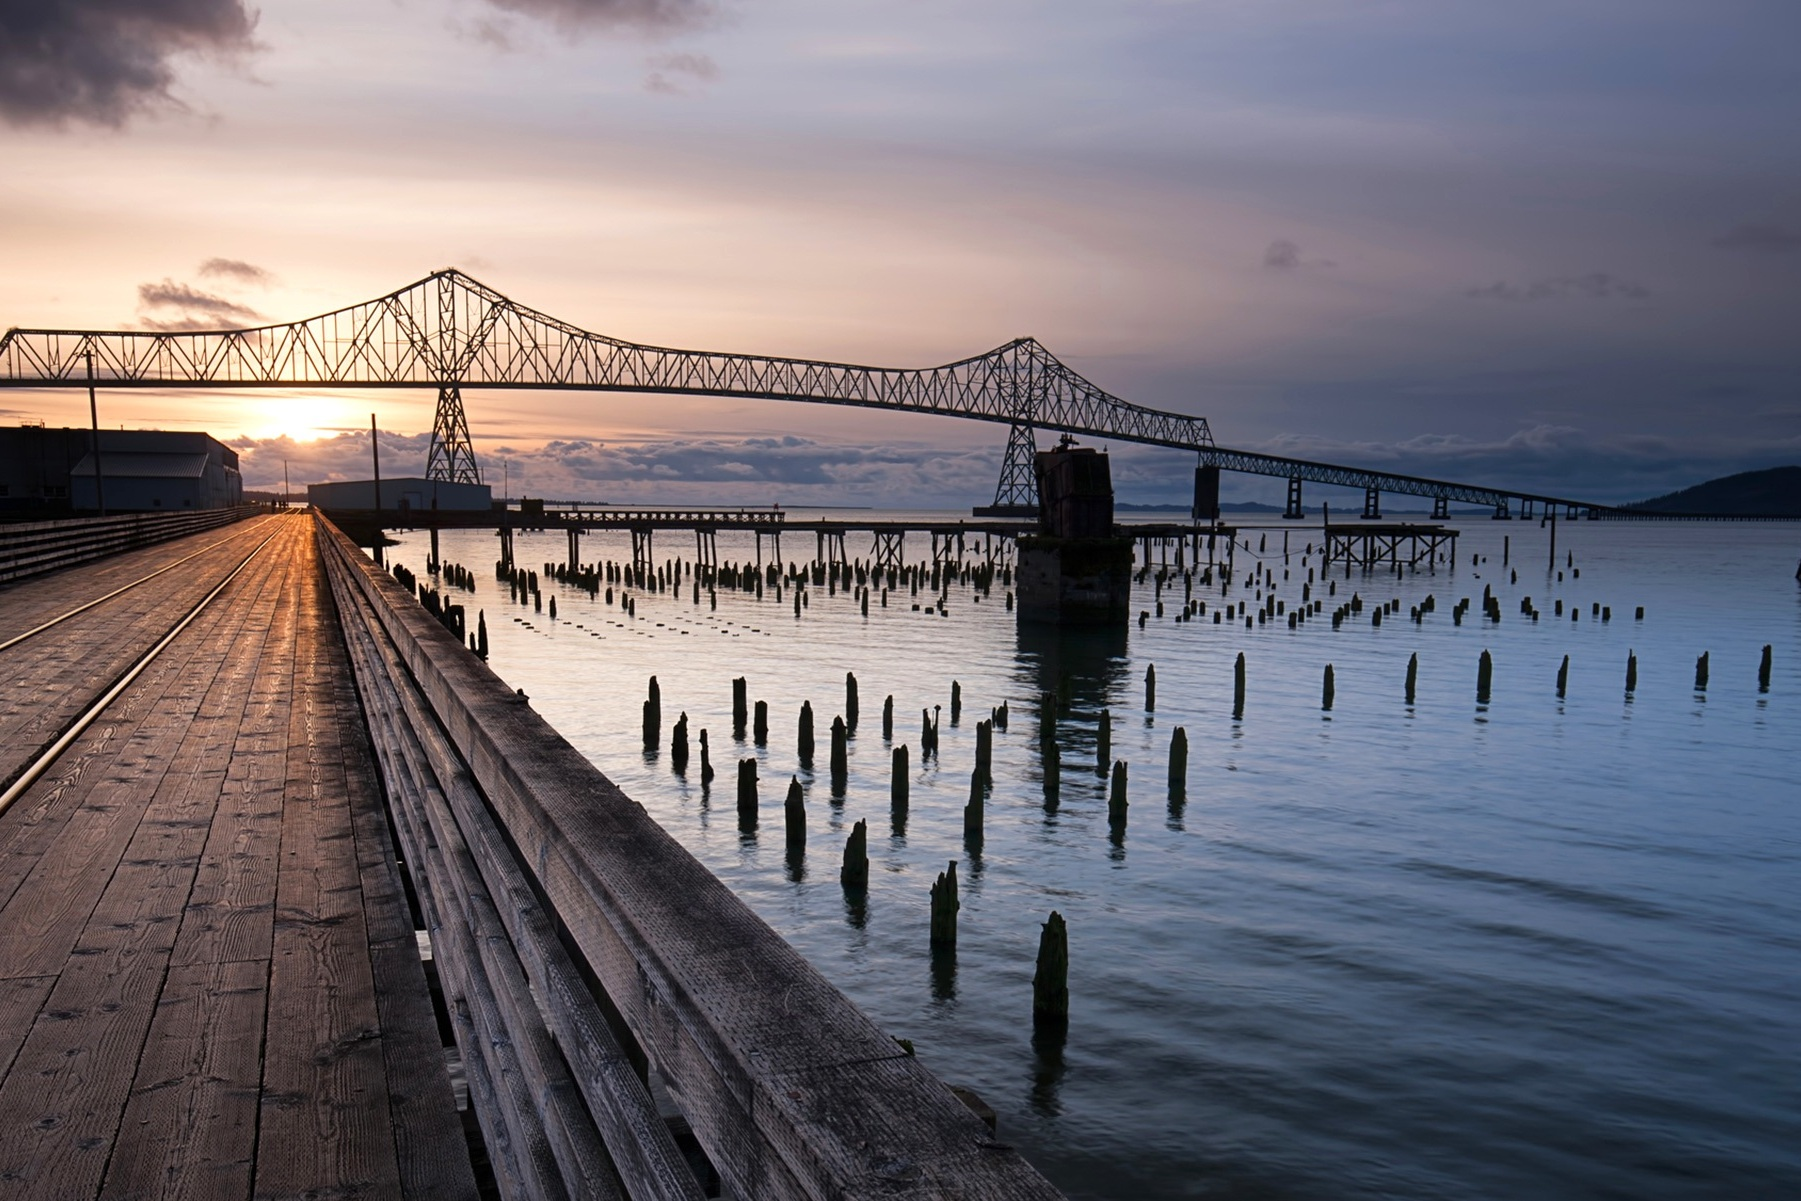 How To Spend A Weekend in Astoria - Top things to do in Astoria including where to eat and best places to stay.